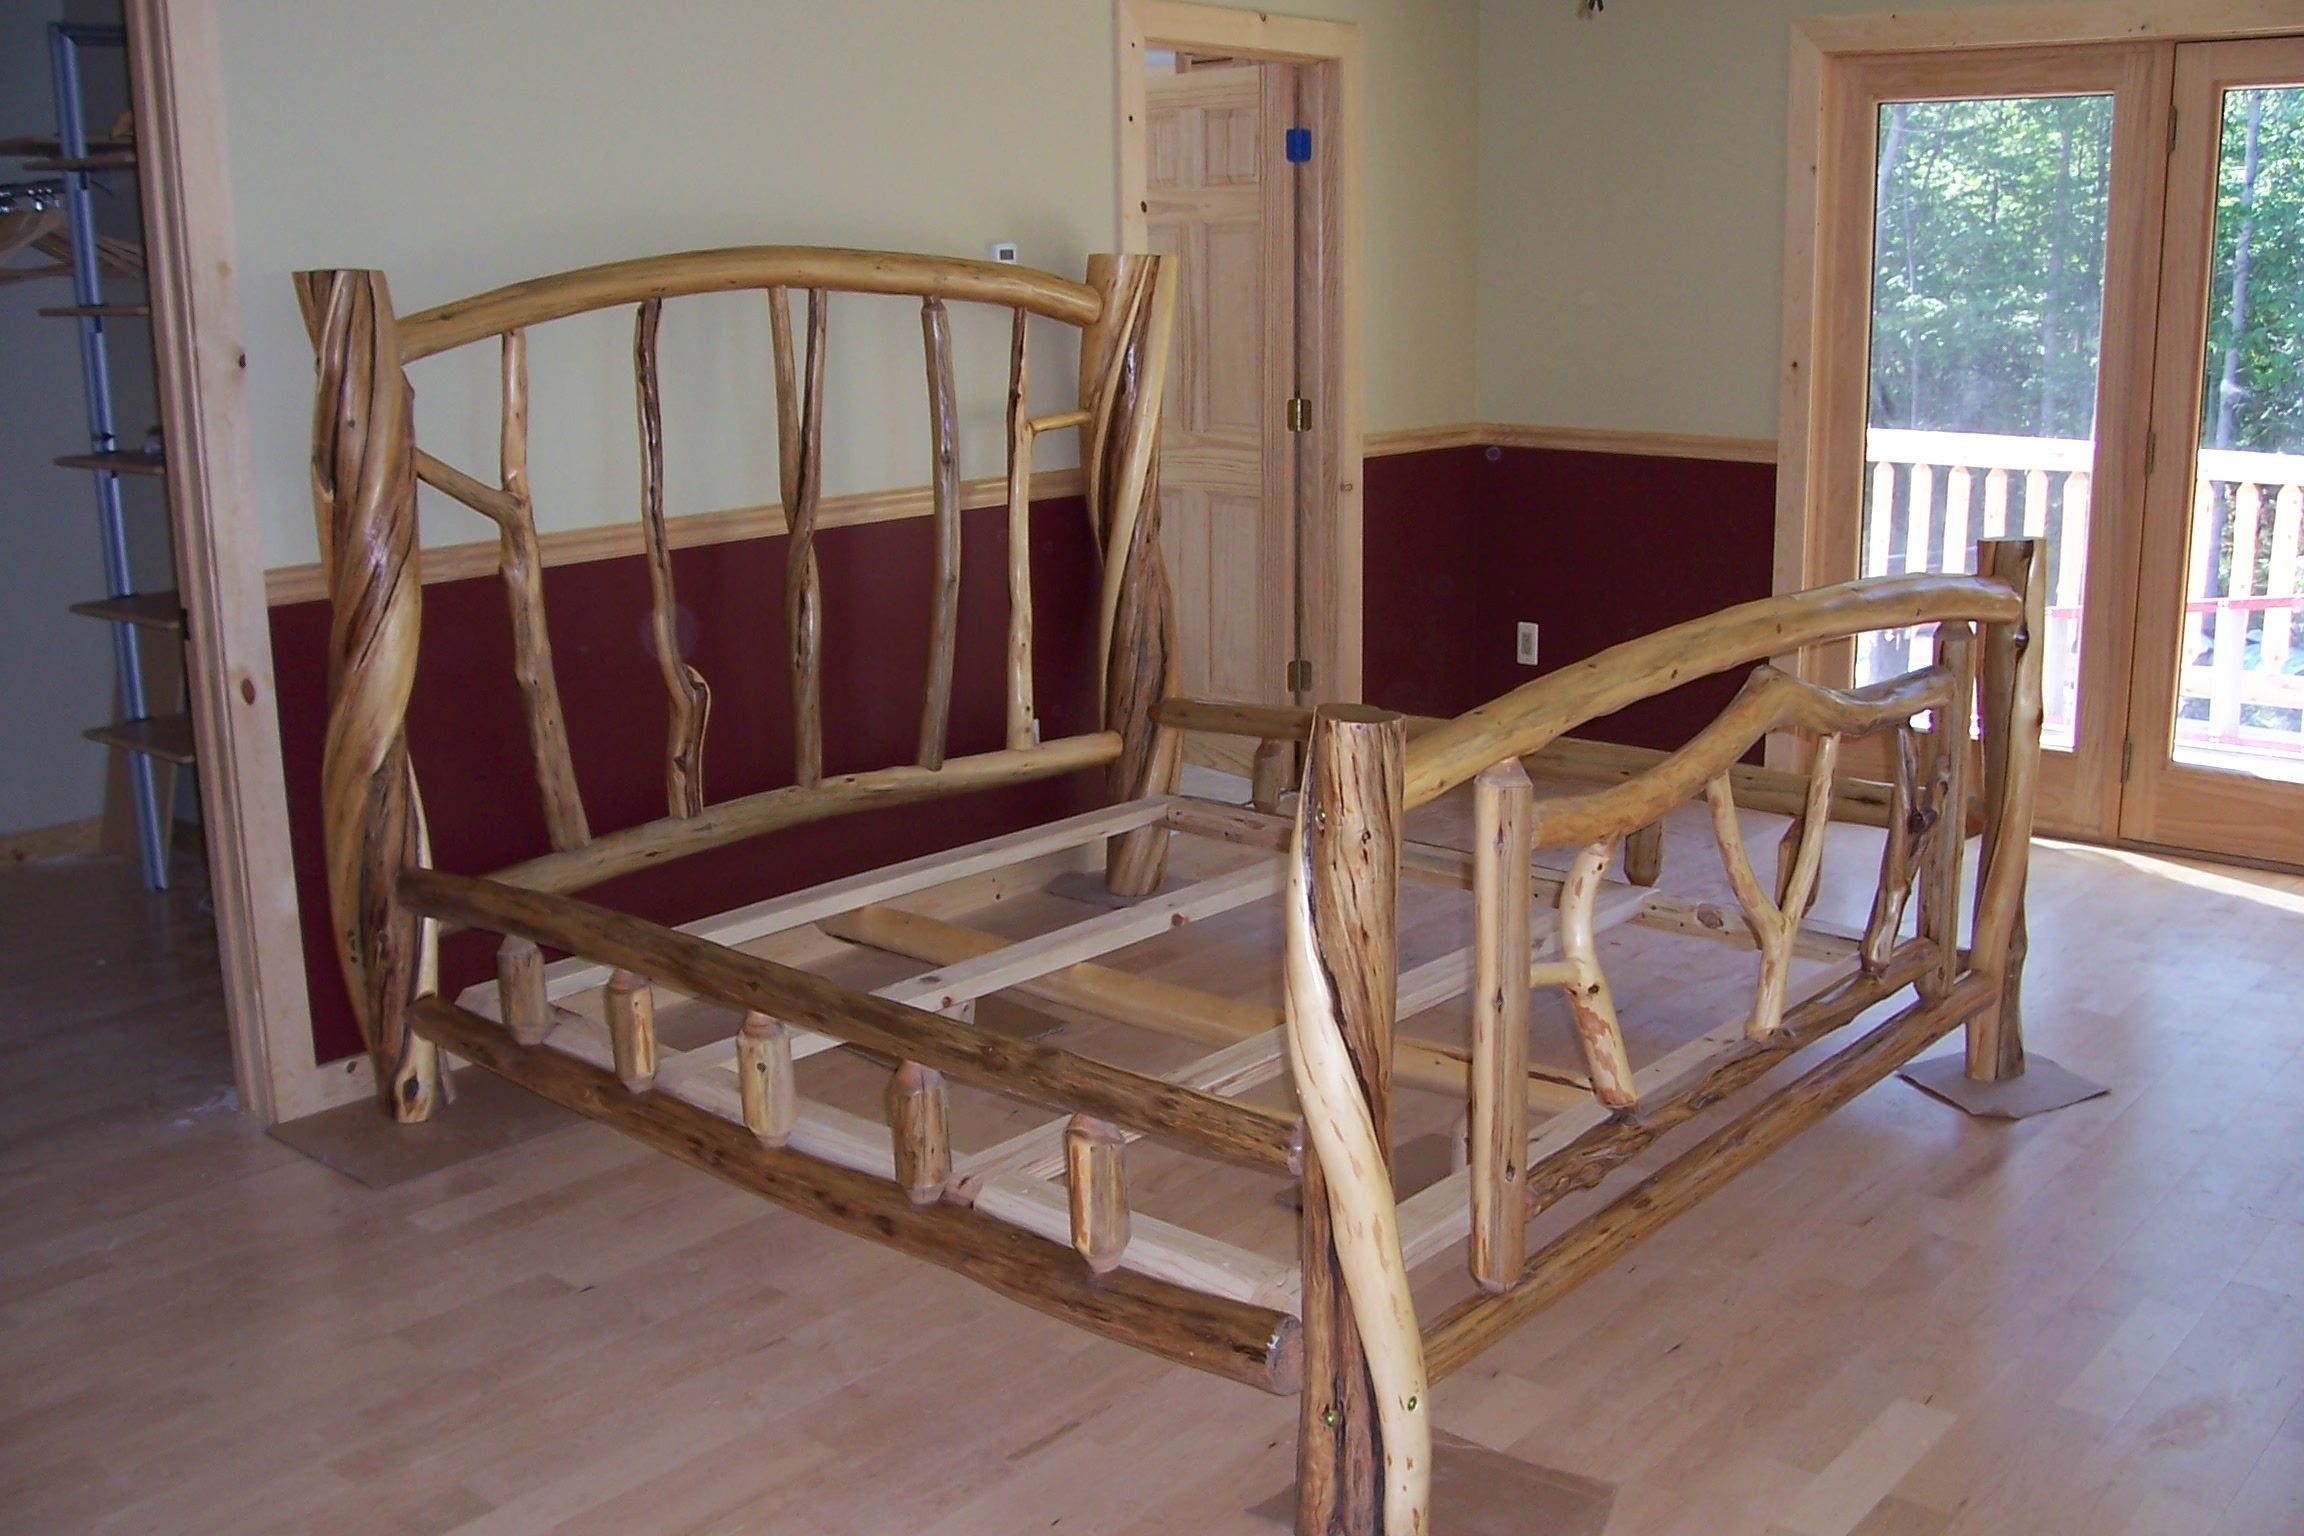 17 best images about cedar furniture on pinterest | furniture, red